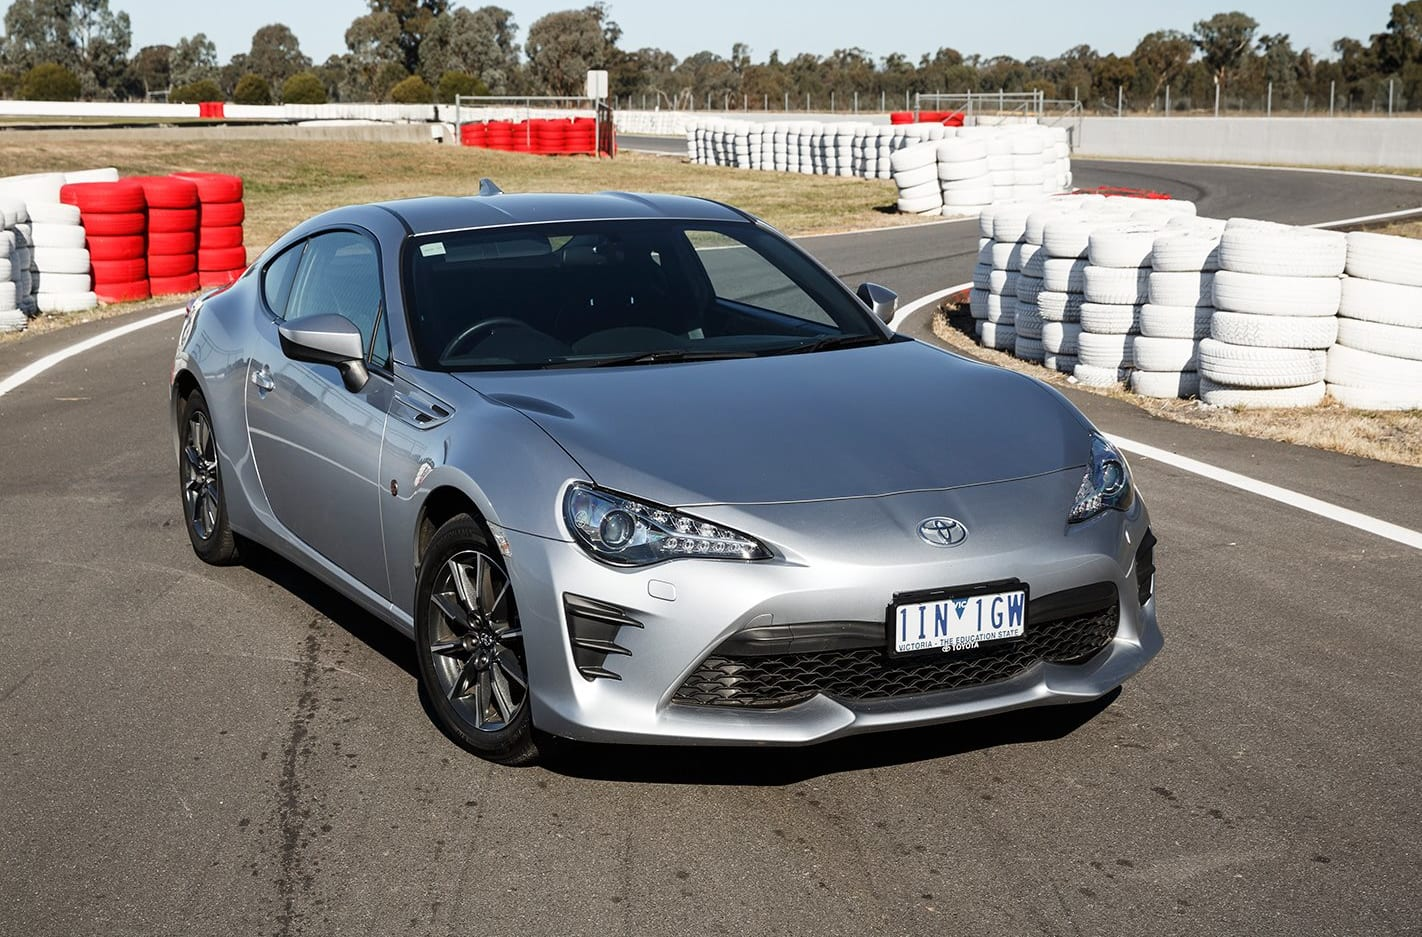 2017 Toyota 86 front